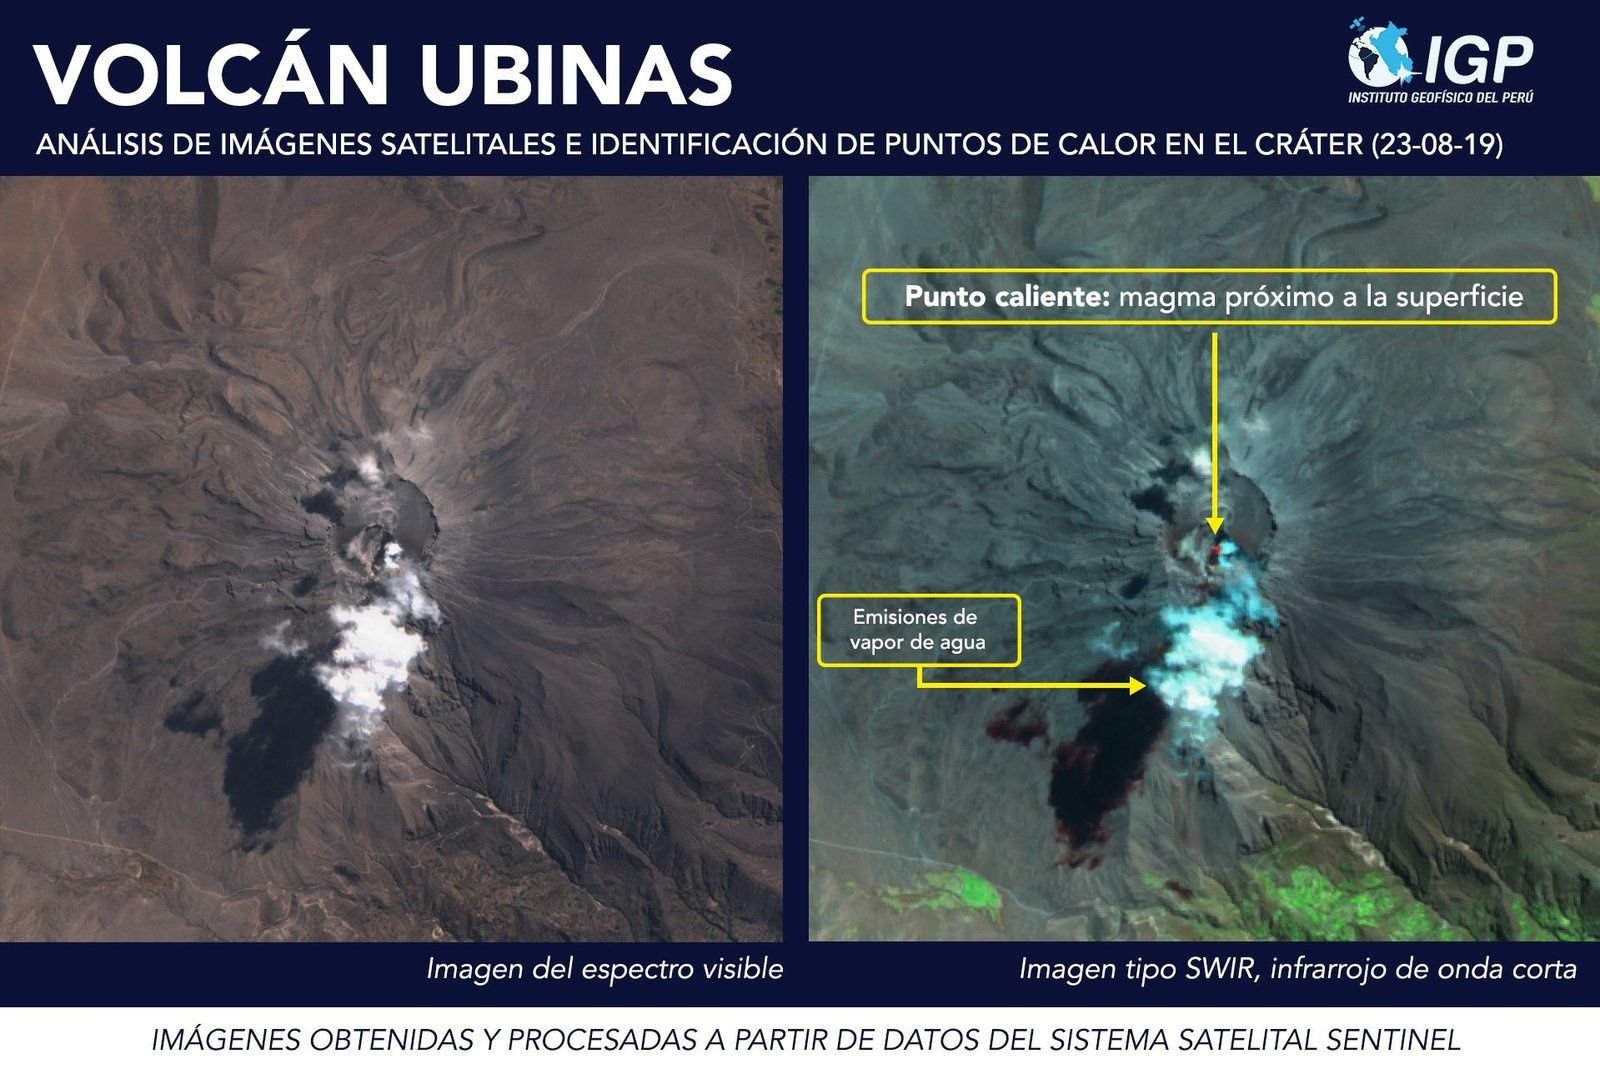 Ubinas - Sentinel-2 images in the visible and SWIR showing the hot spot in the crater and the emissions of gas and water vapor - Doc. IG Peru - one click to enlarge